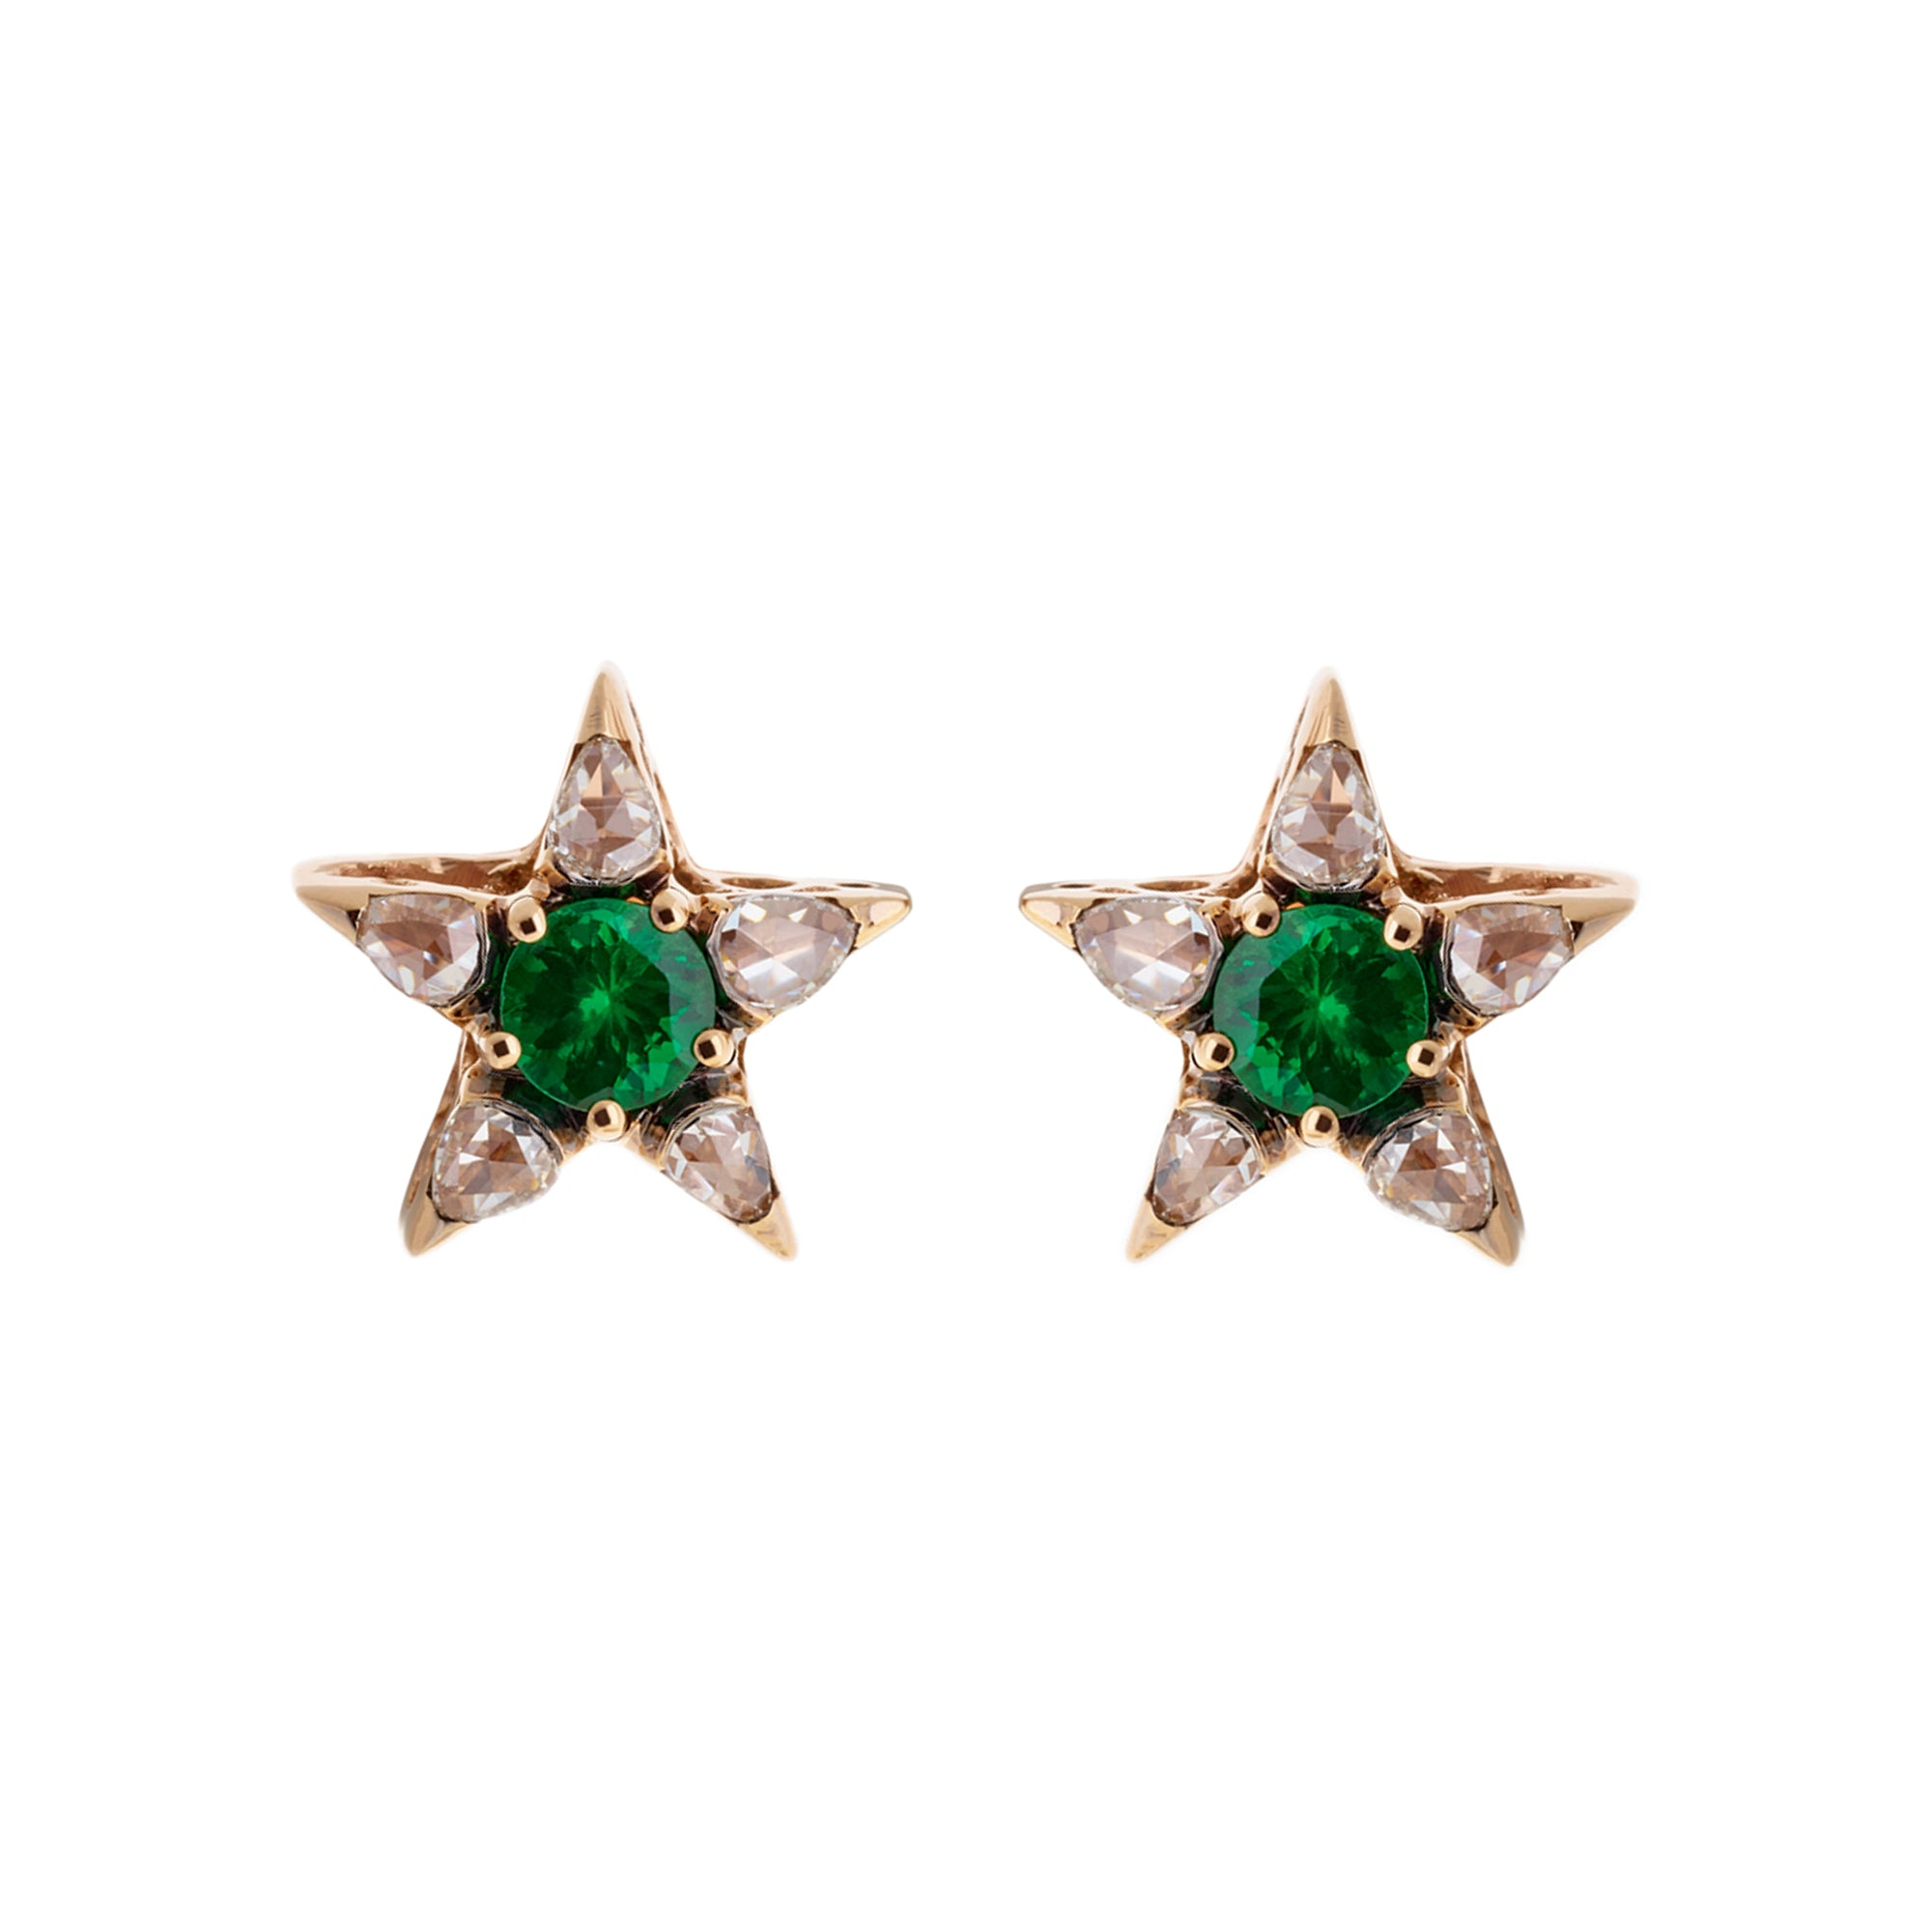 Selim Mouzannar Istanbul Earrings - Earrings - Broken English Jewelry